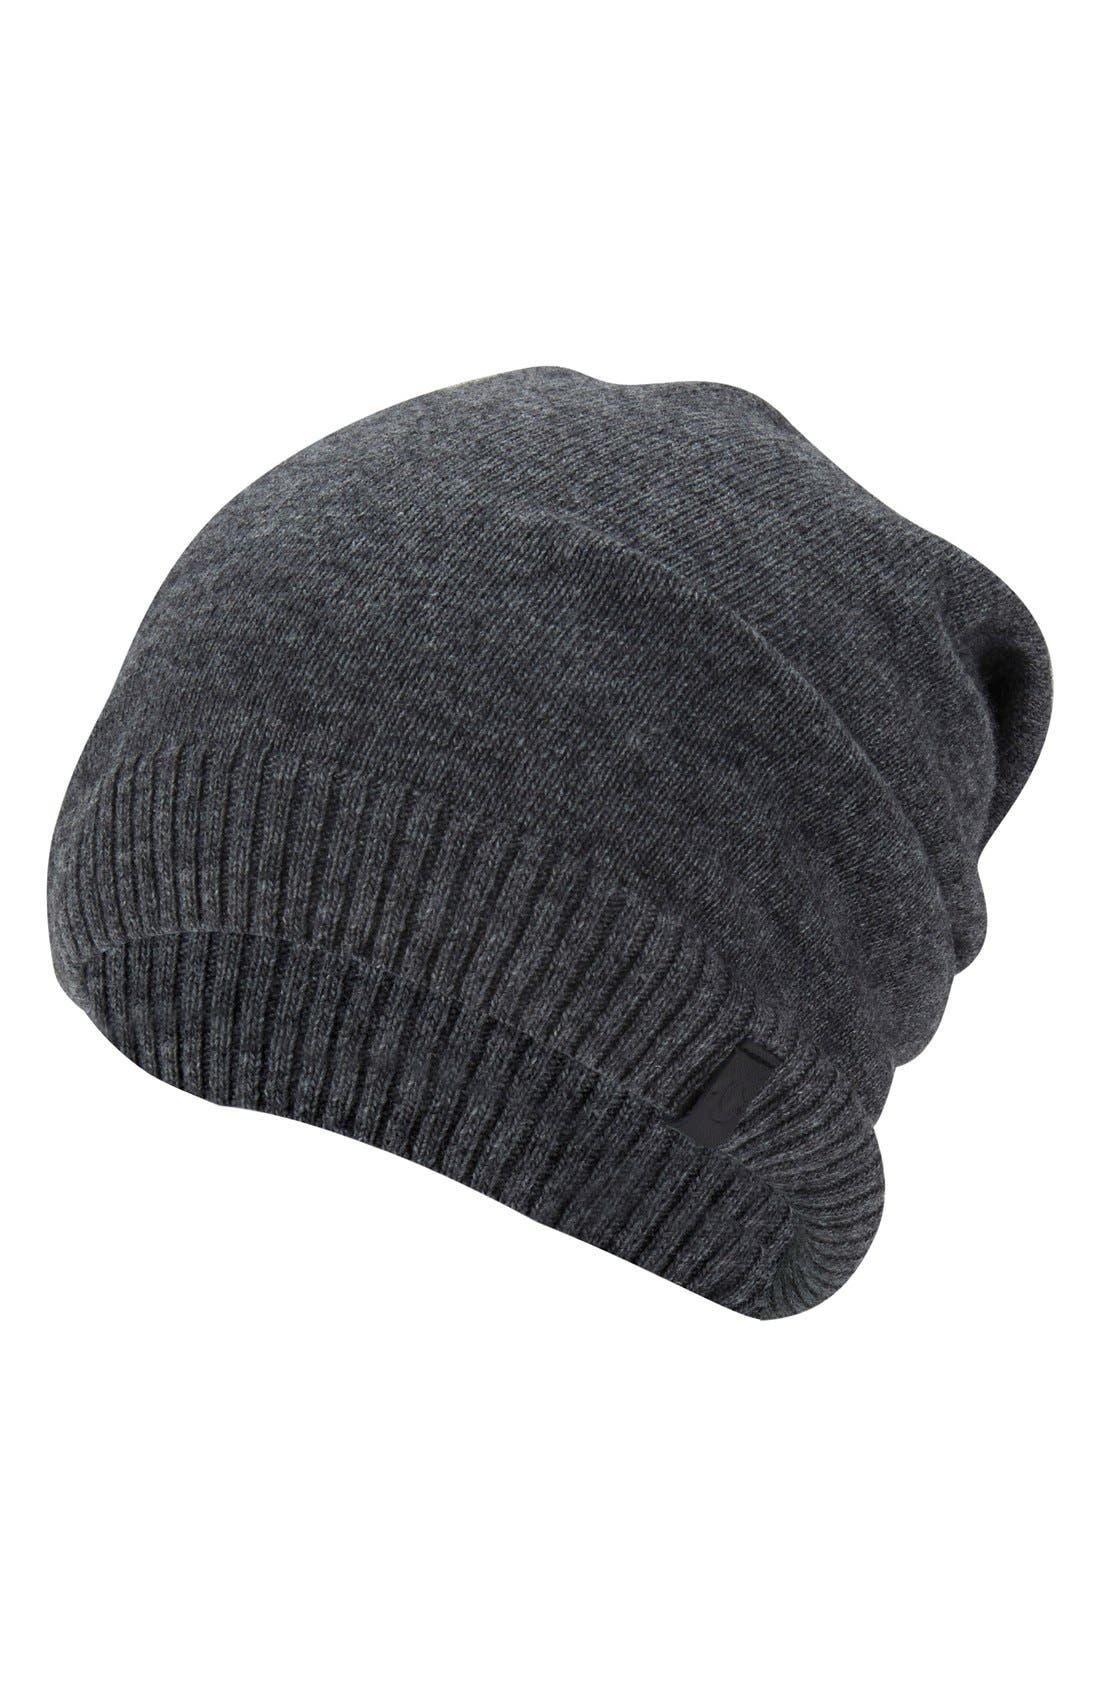 Alternate Image 1 Selected - True Religion Brand Jeans Slouch Beanie